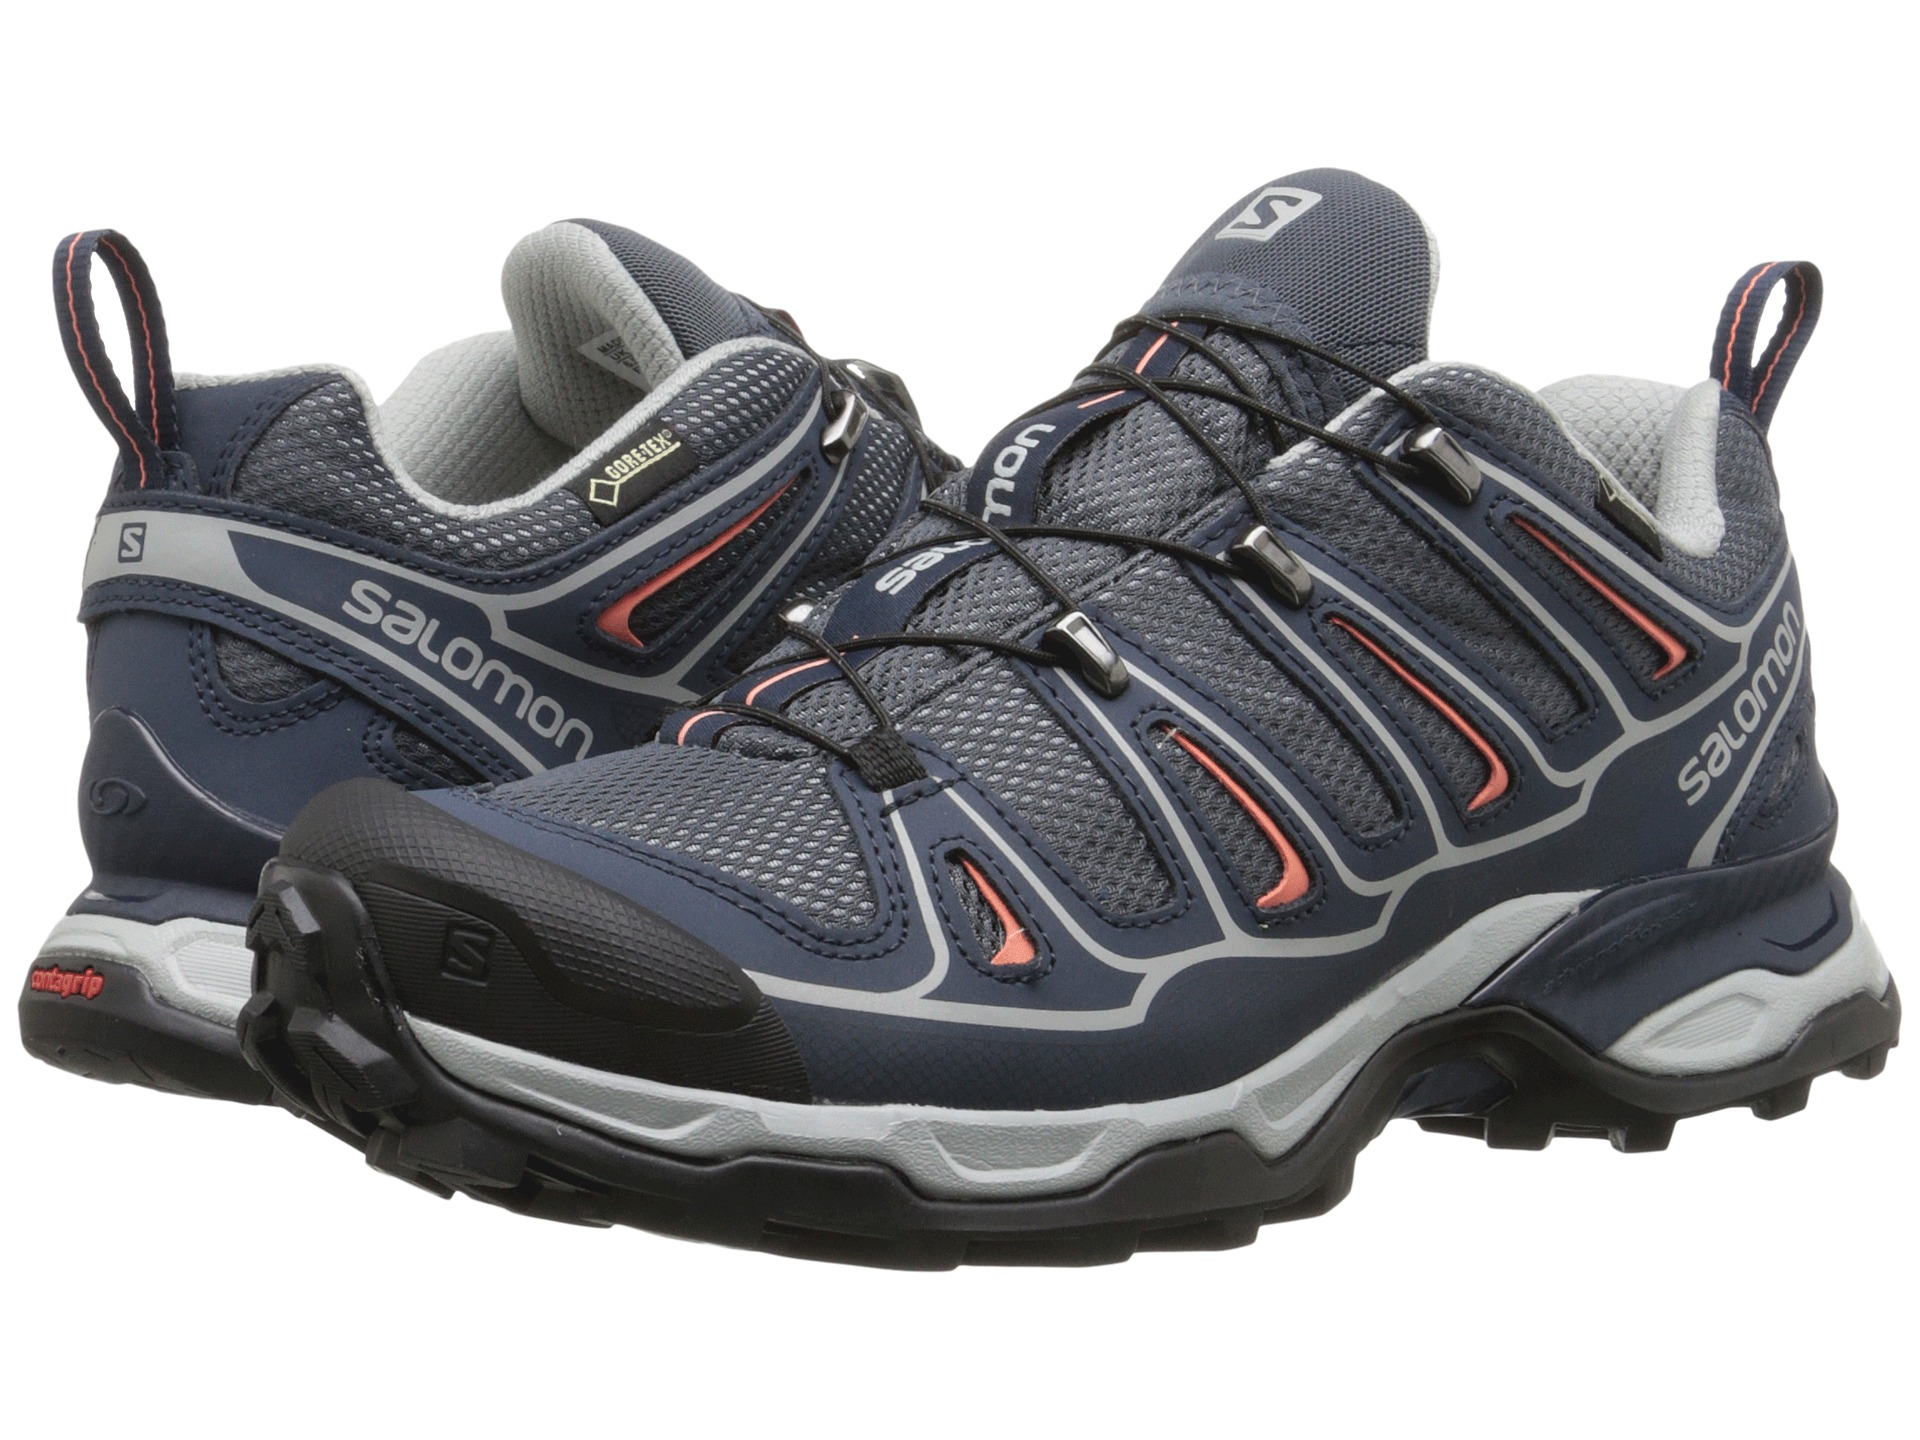 53cc84c8e23 Salomon X Ultra 2 GTX Hiking Shoes